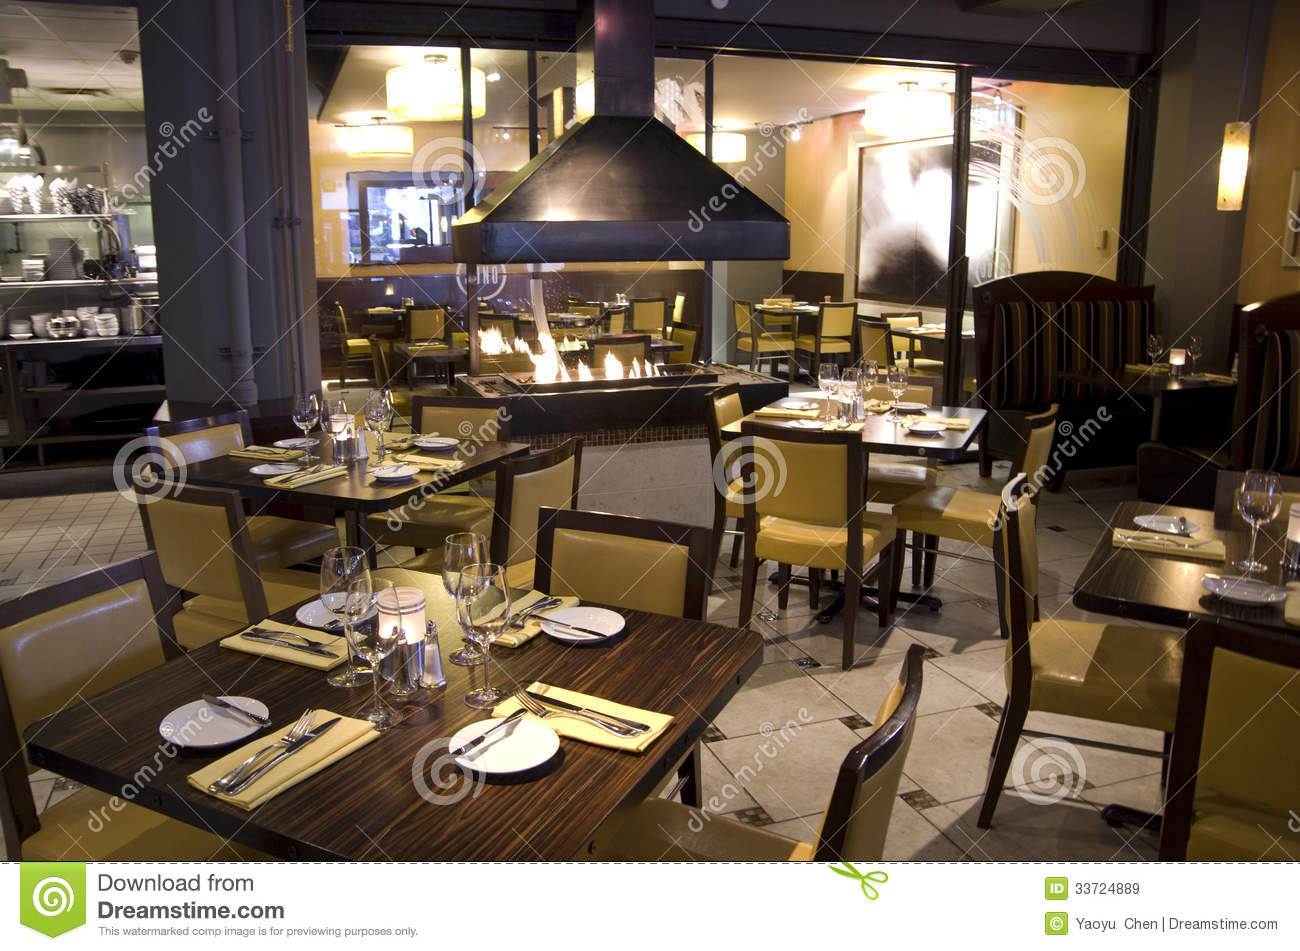 Luxury bar restaurant editorial stock image. Image of designs - 33724889